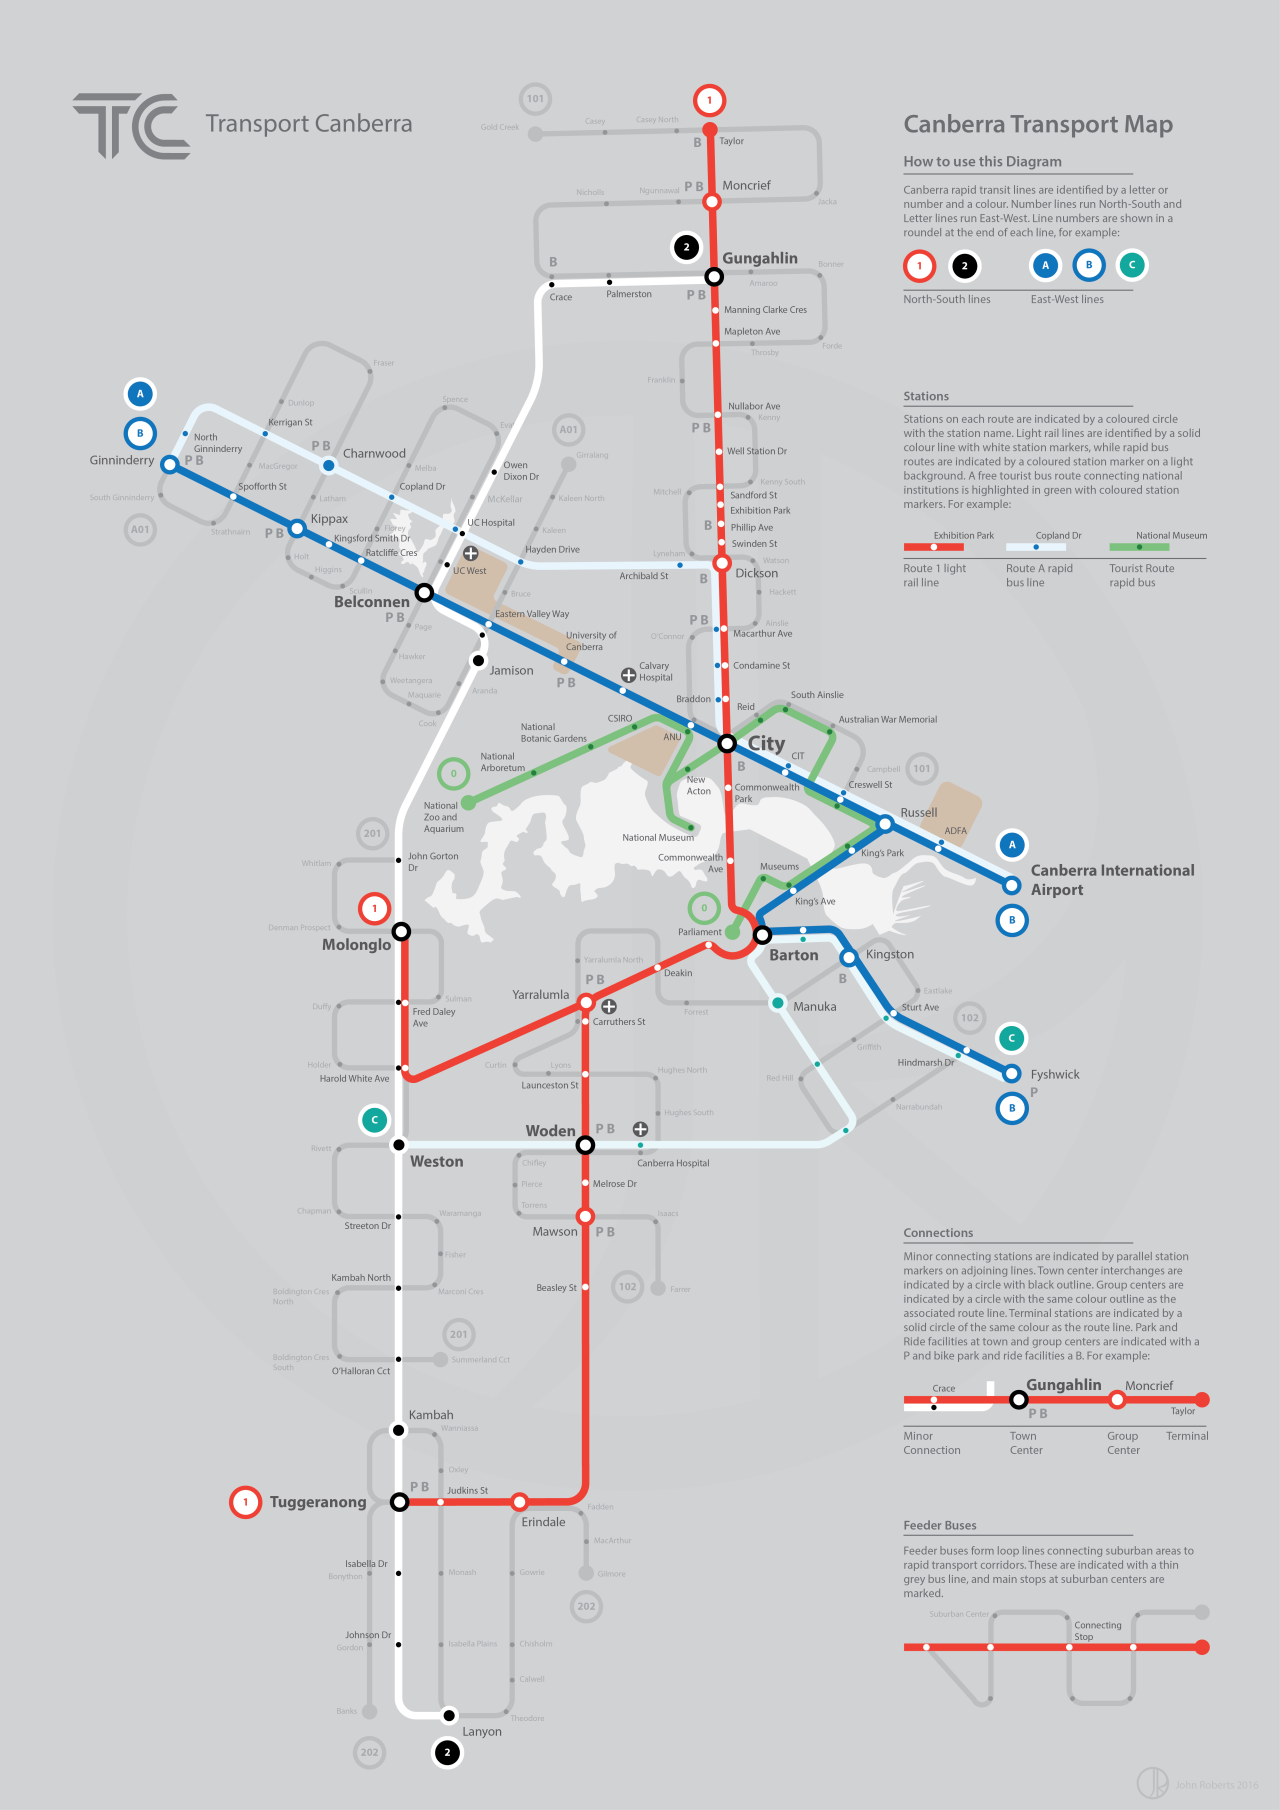 New York Subway Map Future.Submission Fantasy Map Future Rapid Transit Of Canberra